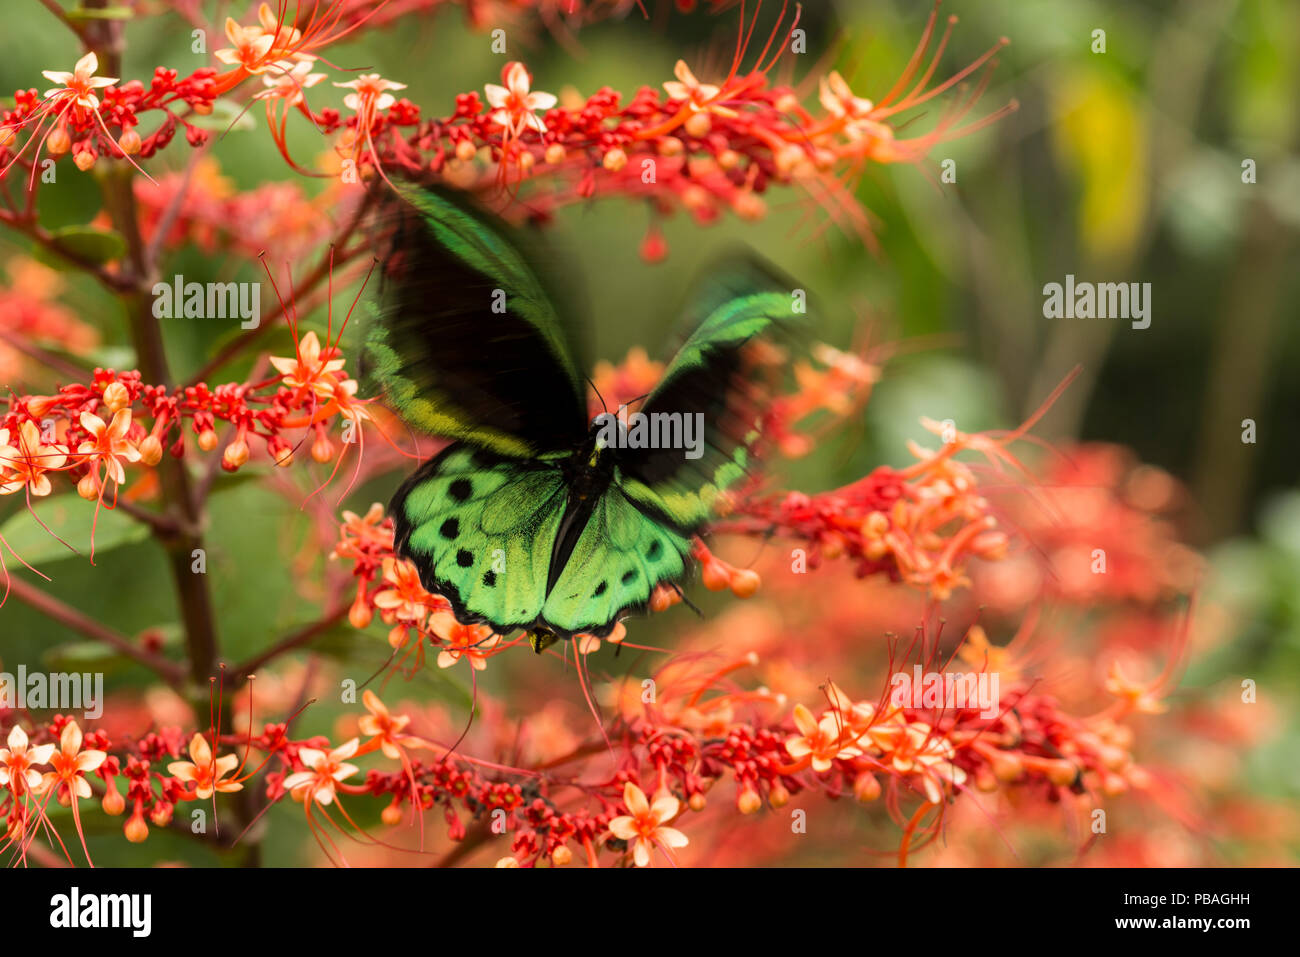 Cairns birdwing butterfly (Ornithoptera euphorion) on red tropical flowers, Queensland, Australia. - Stock Image